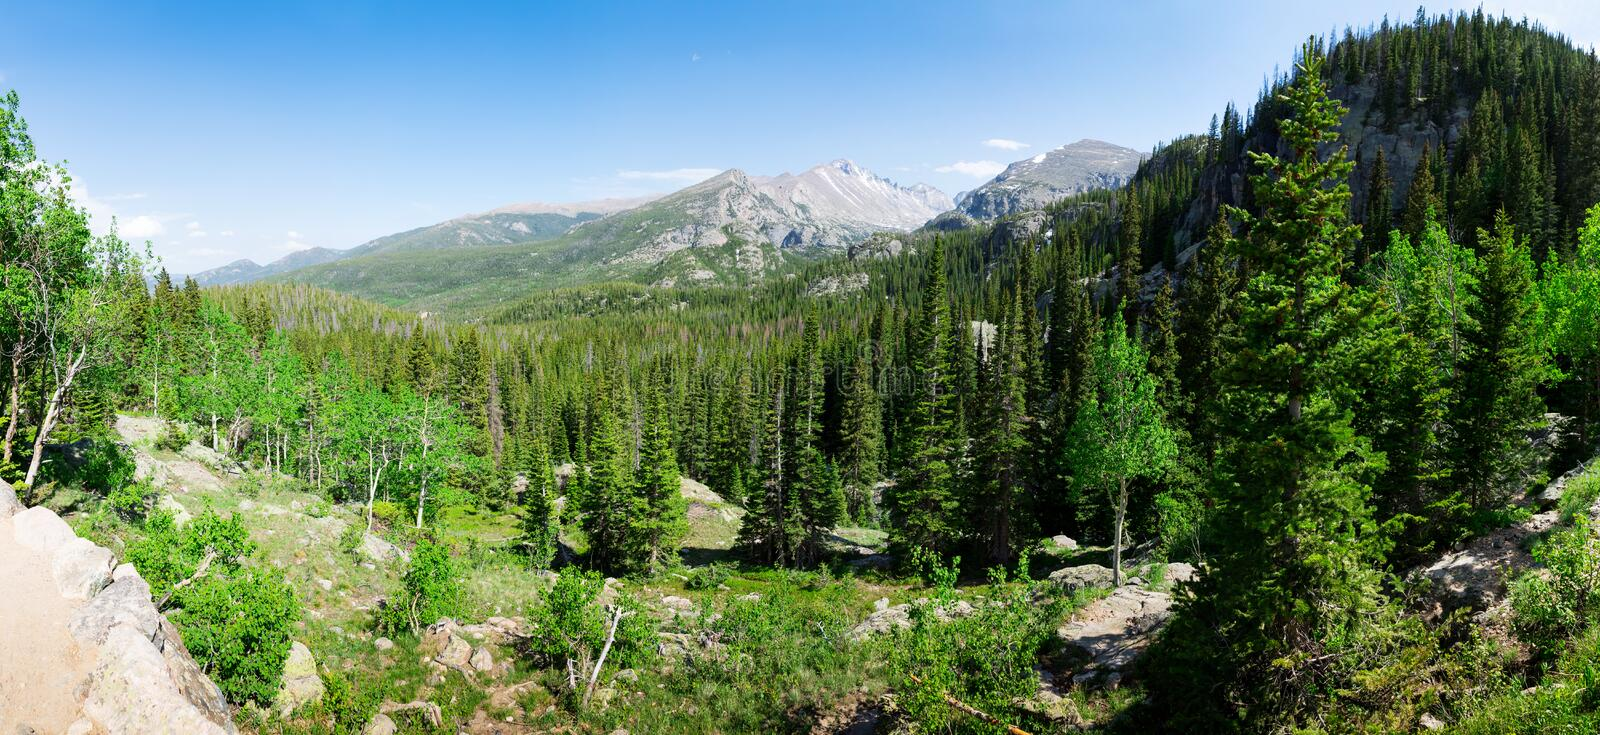 Rocky mountains landscape panoramic view royalty free stock images